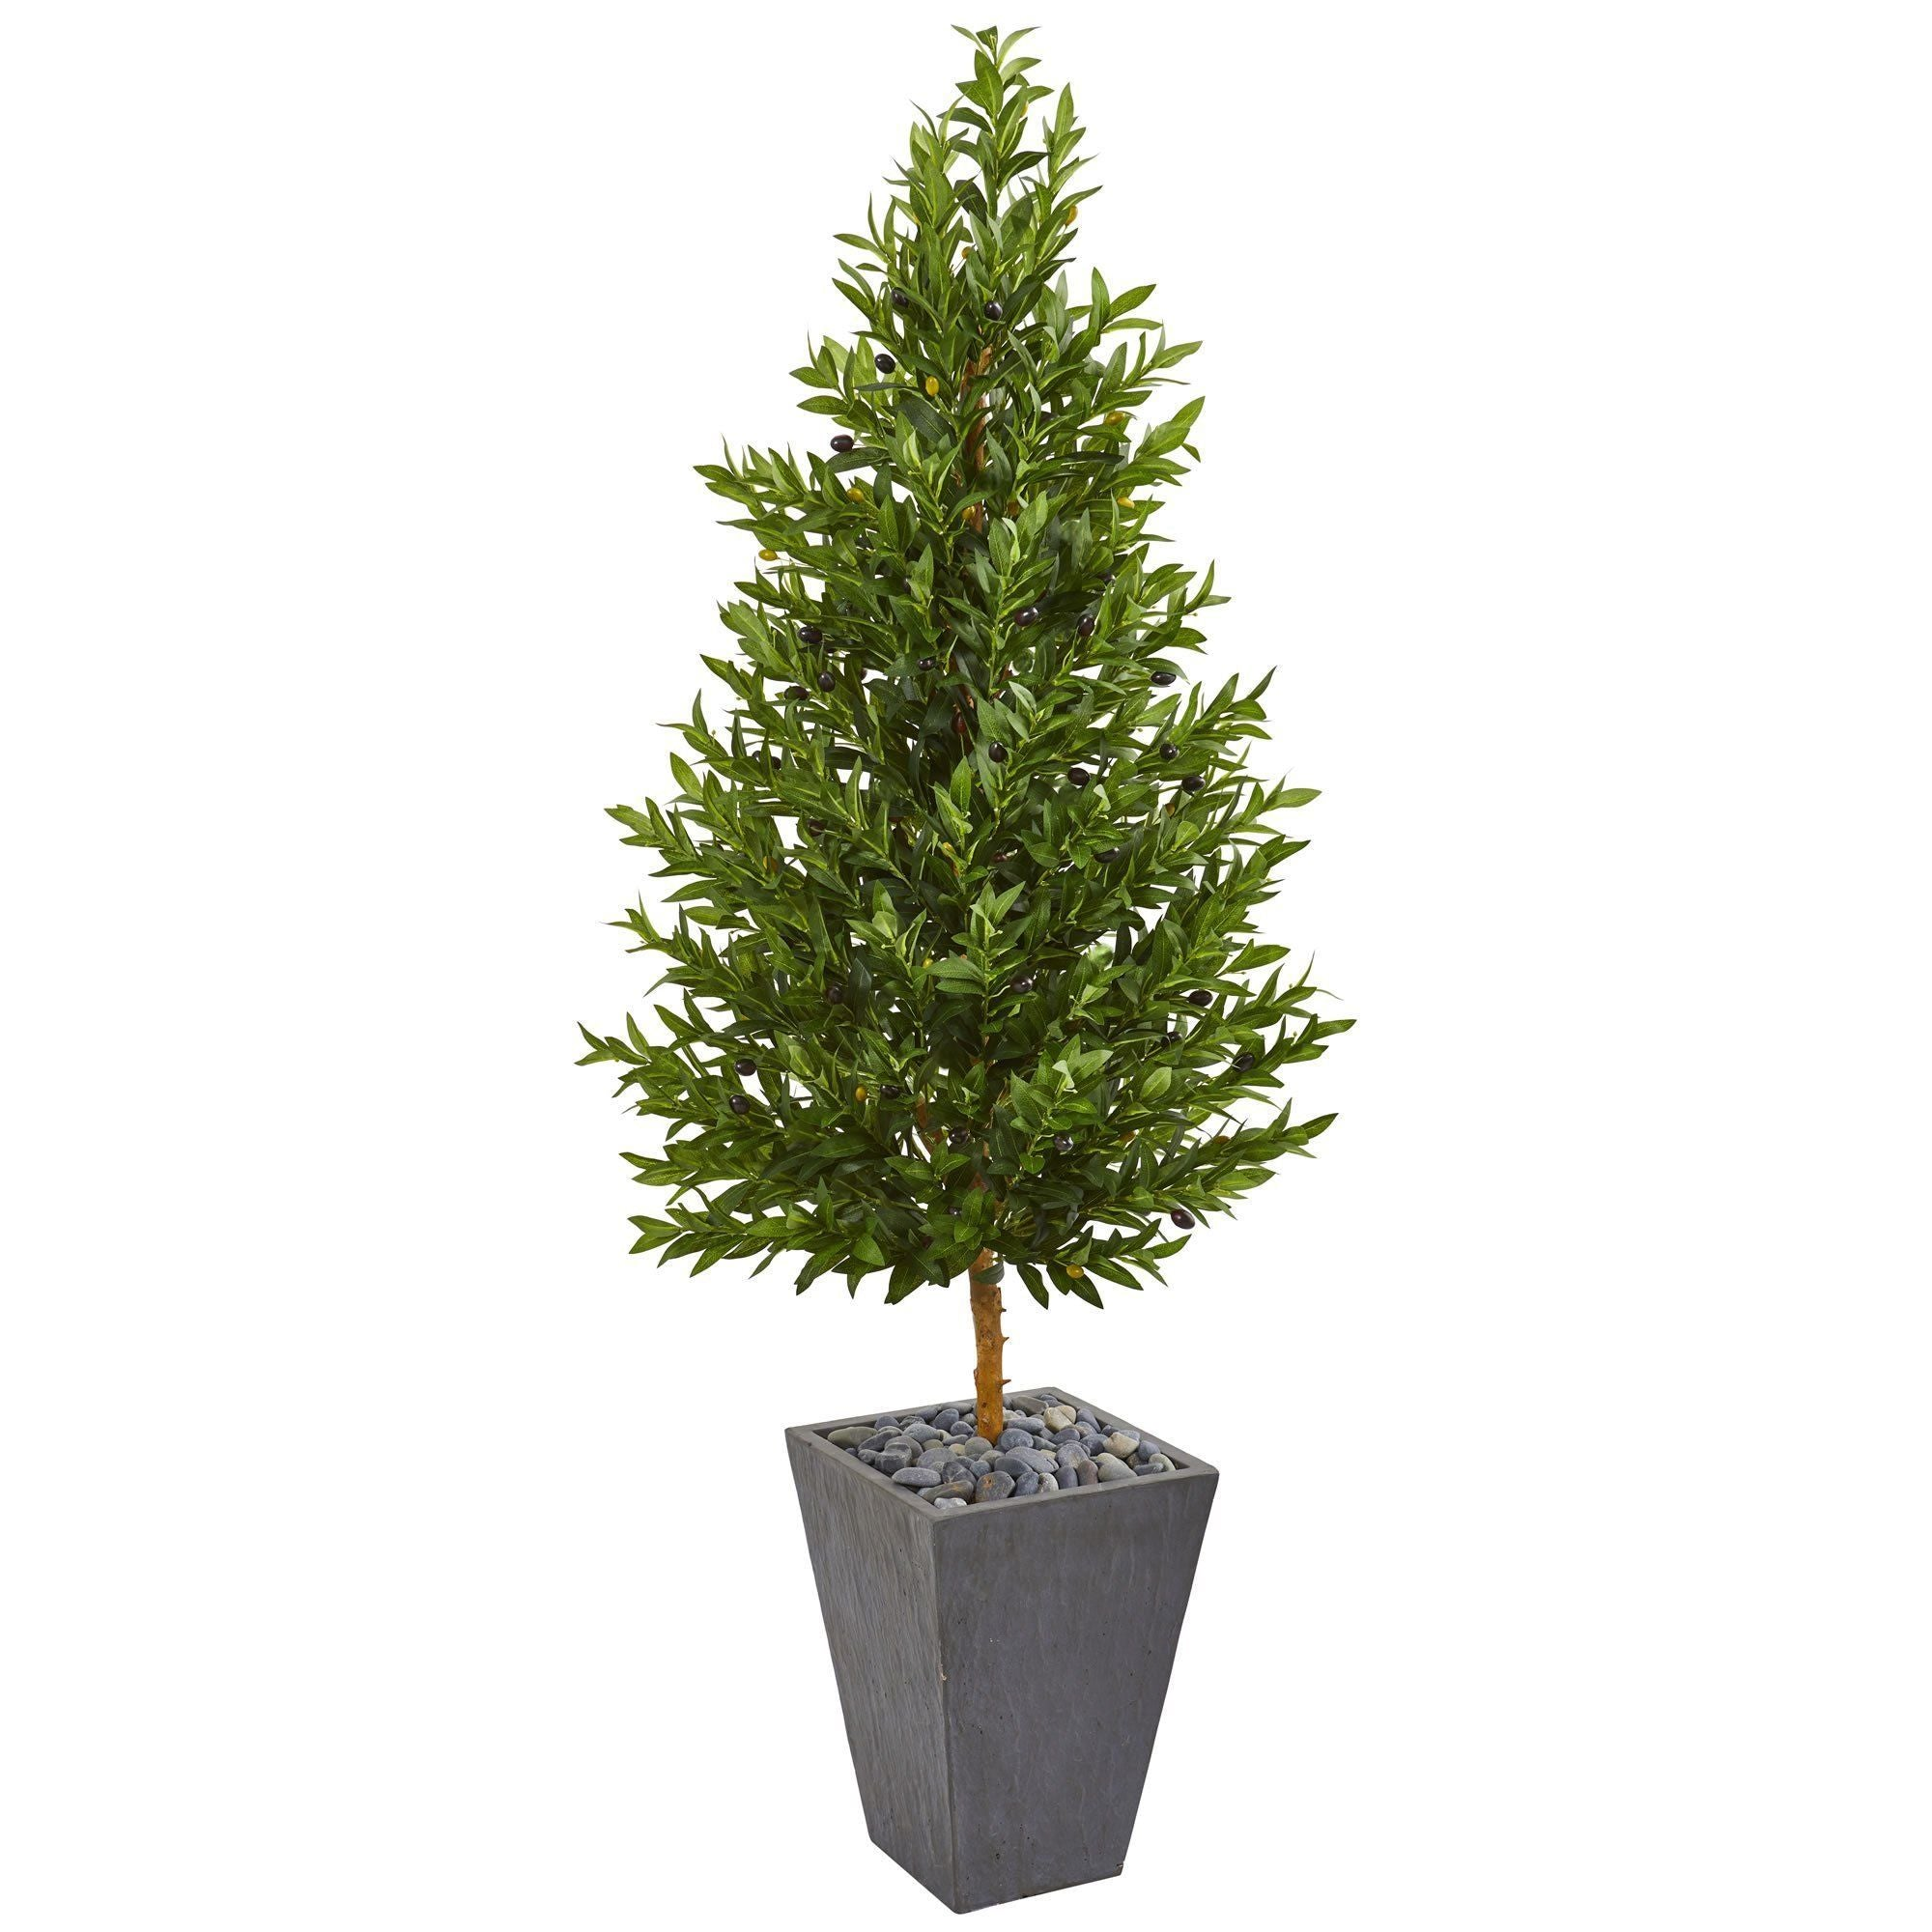 67 Olive Cone Topiary Artificial Tree In Slate Planter Uv Resistant Indoor Outdoor Nearly Natural